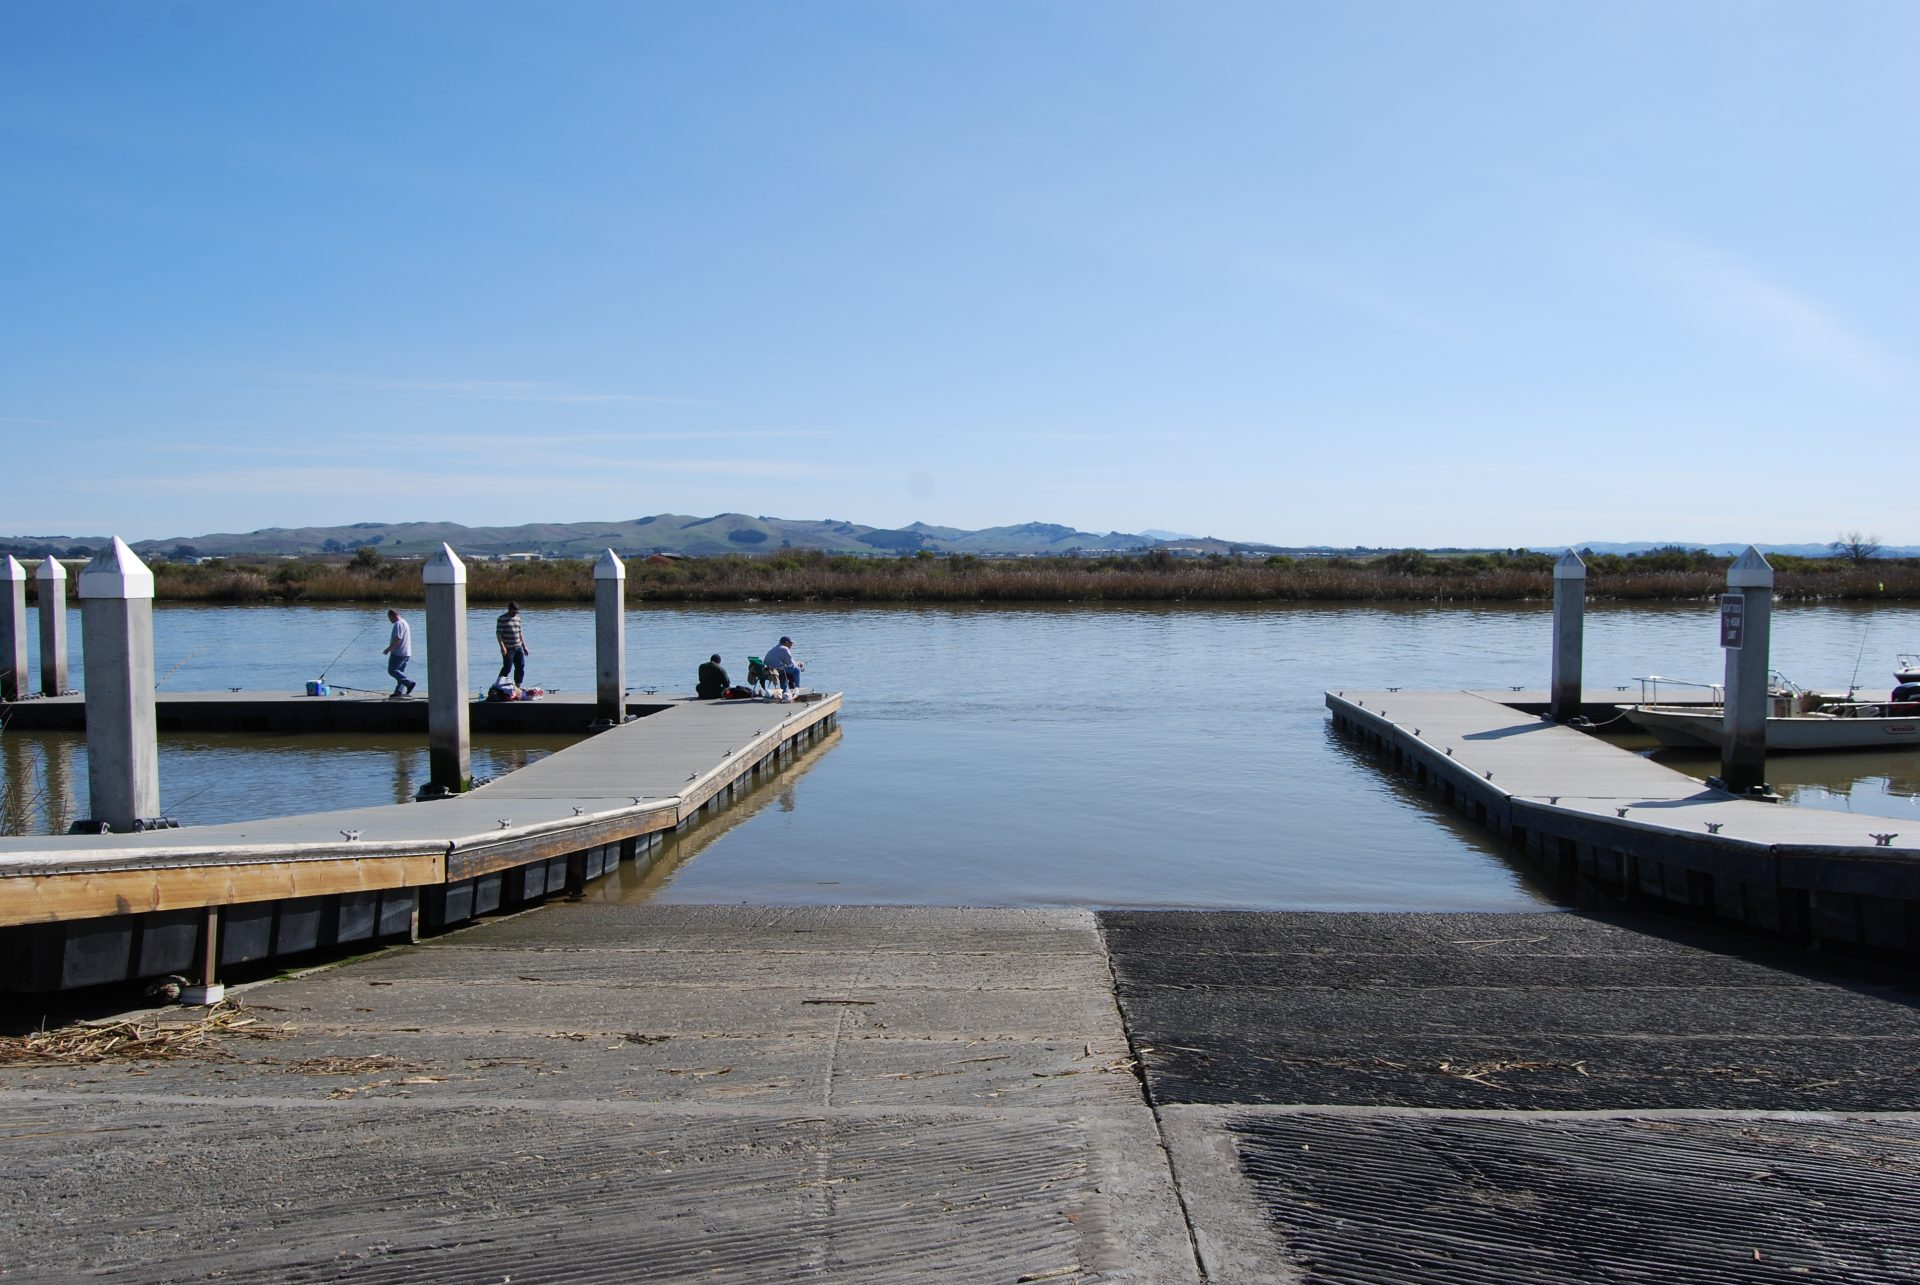 View down boat ramp into water